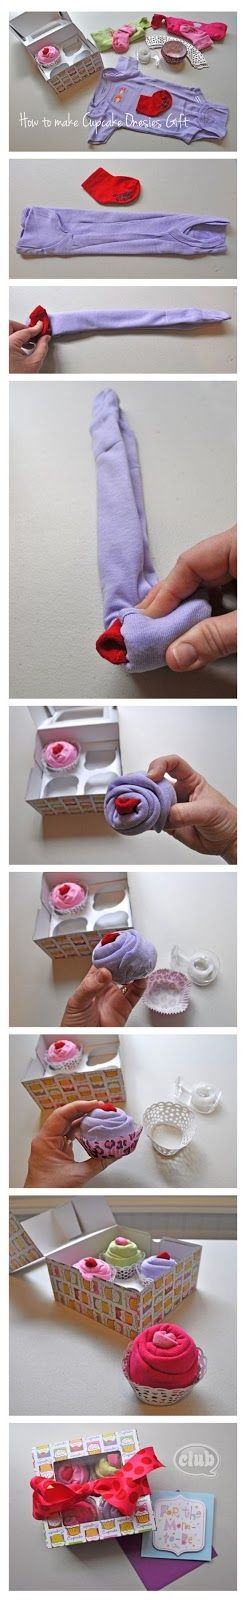 cupcake onesies baby gift, i'am so gonna do this for the next baby shower i go.